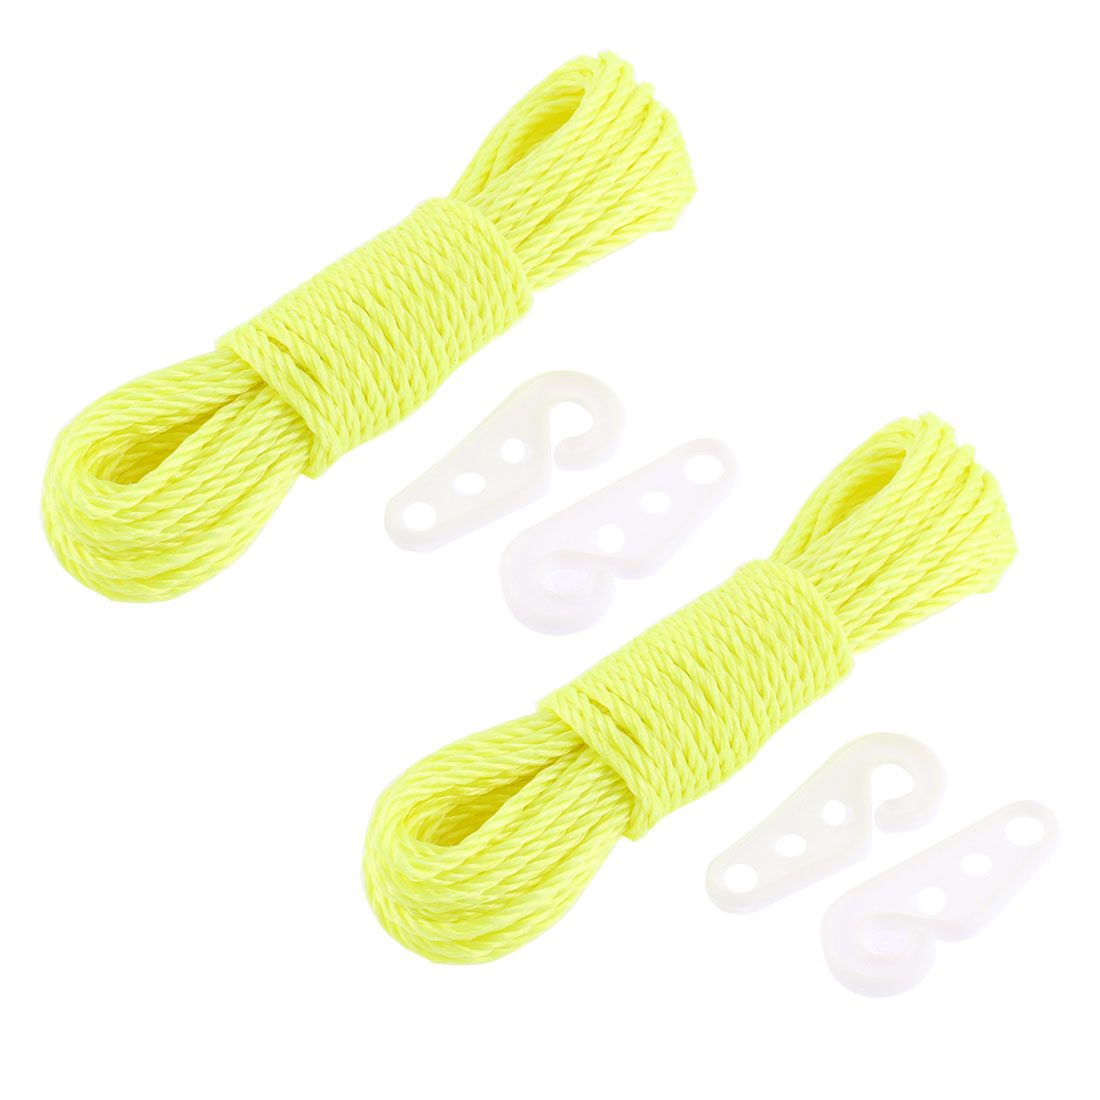 Nylon Clothesline Clothes Rope 10M 33Ft Long Yellow 2 Pcs